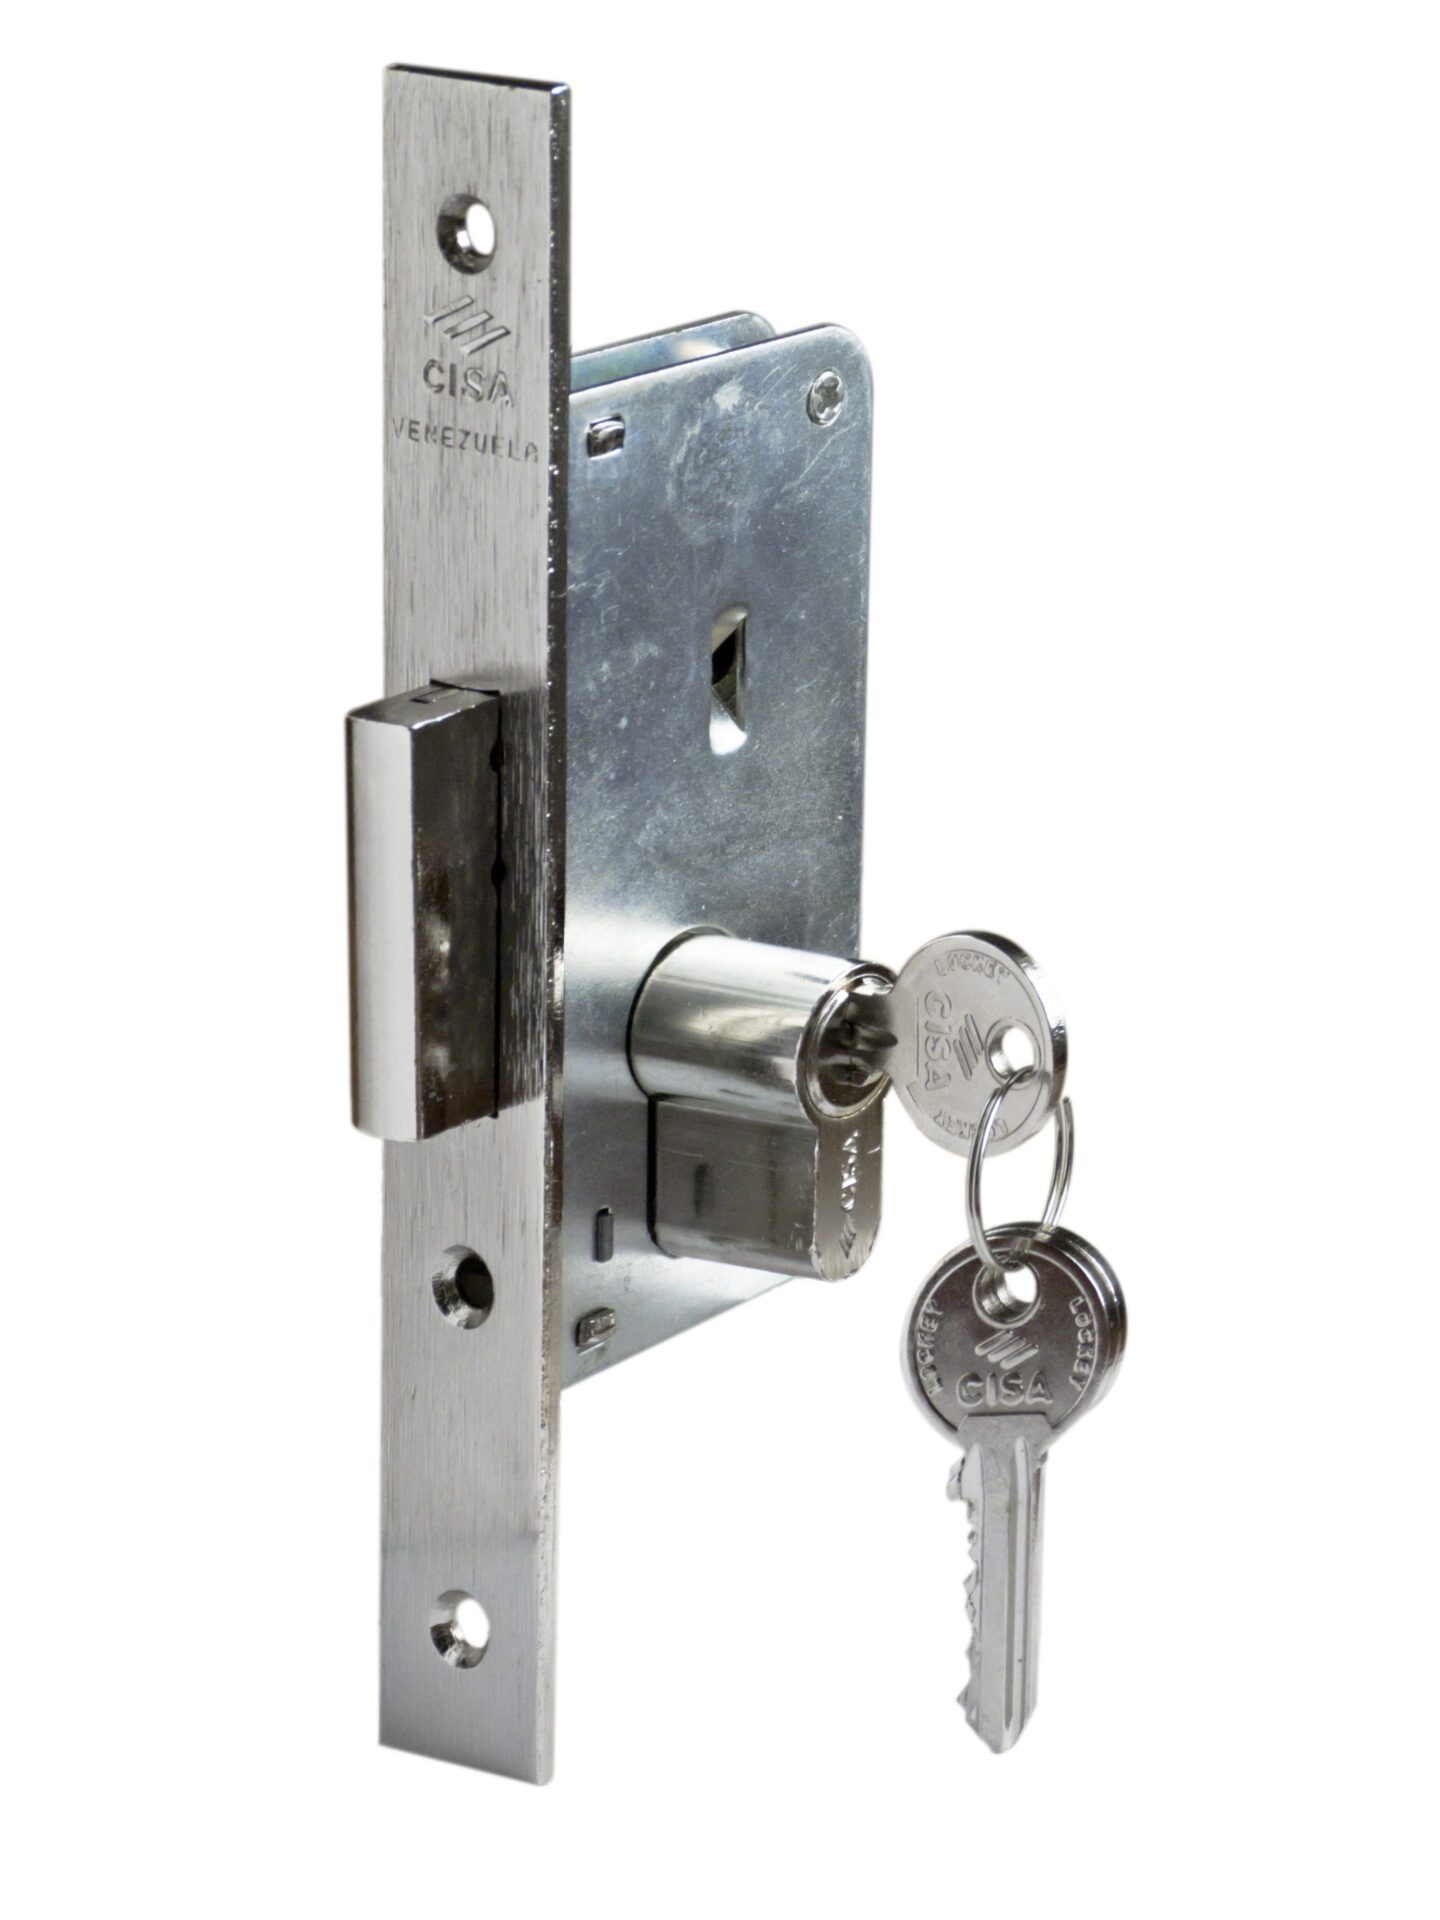 Mortise Door Lock 1″ or 25 mm with 1 Key Turn